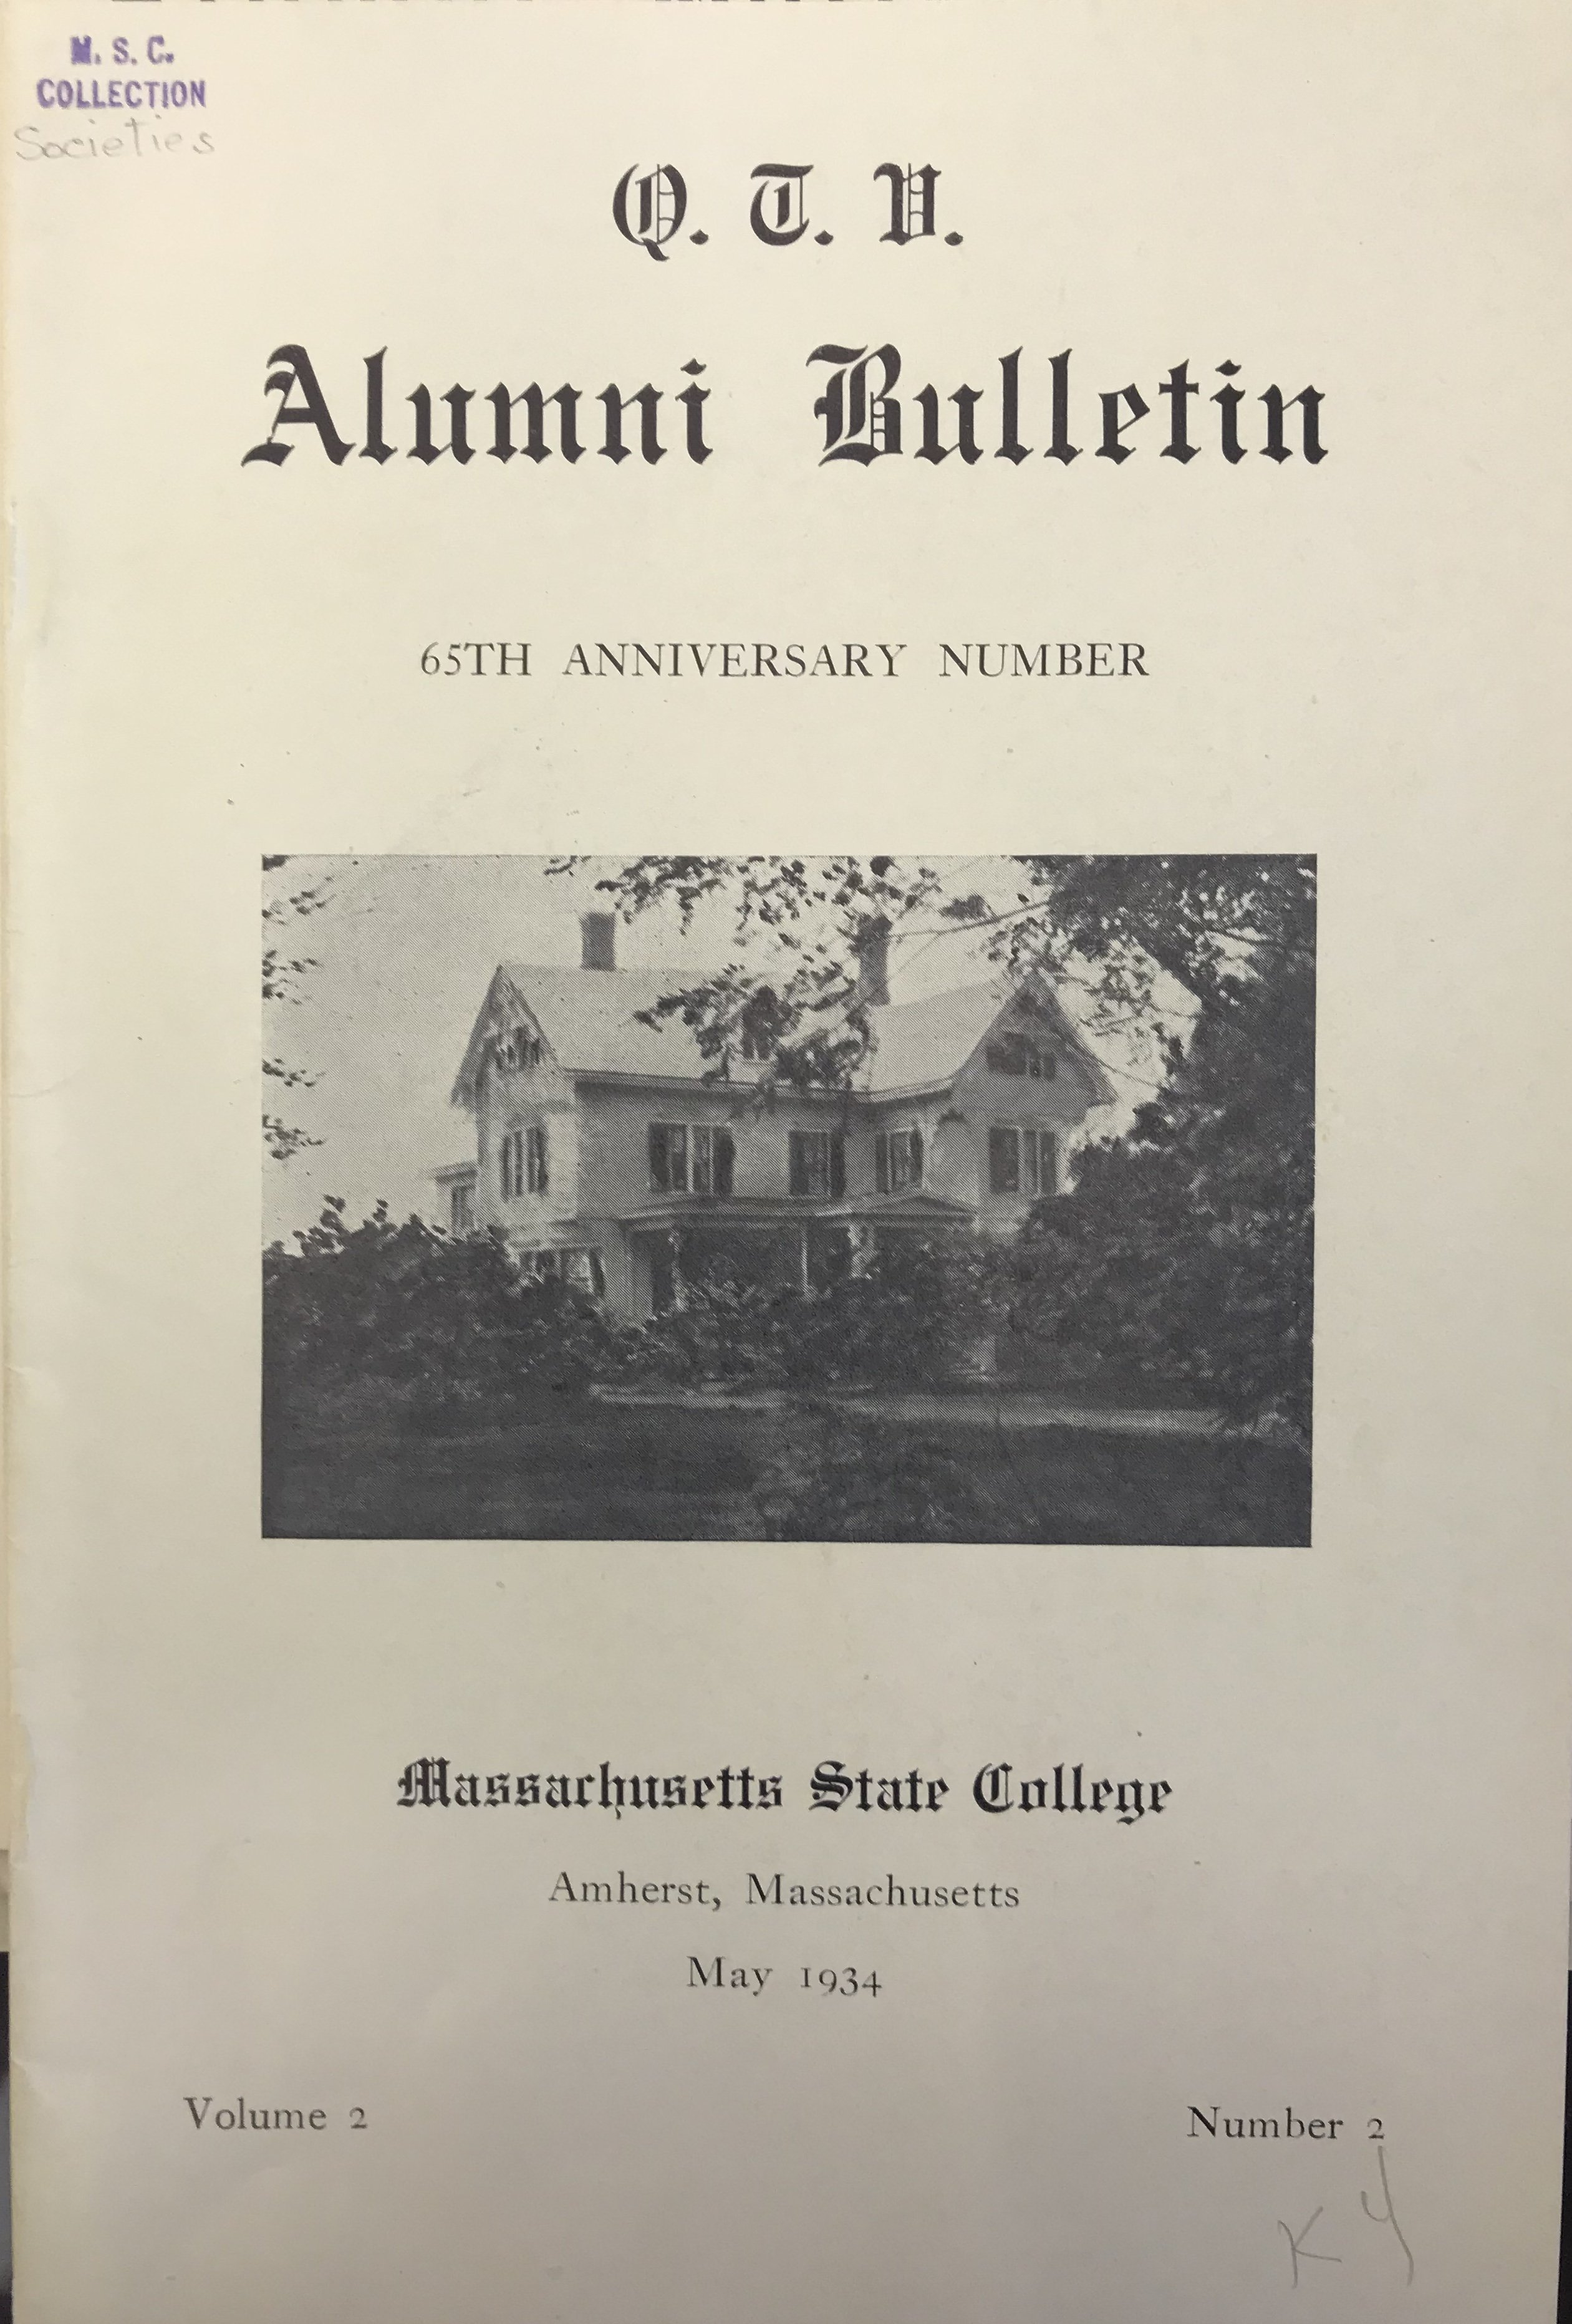 Alumni Bulletin, showing original Fearing fraternity house.